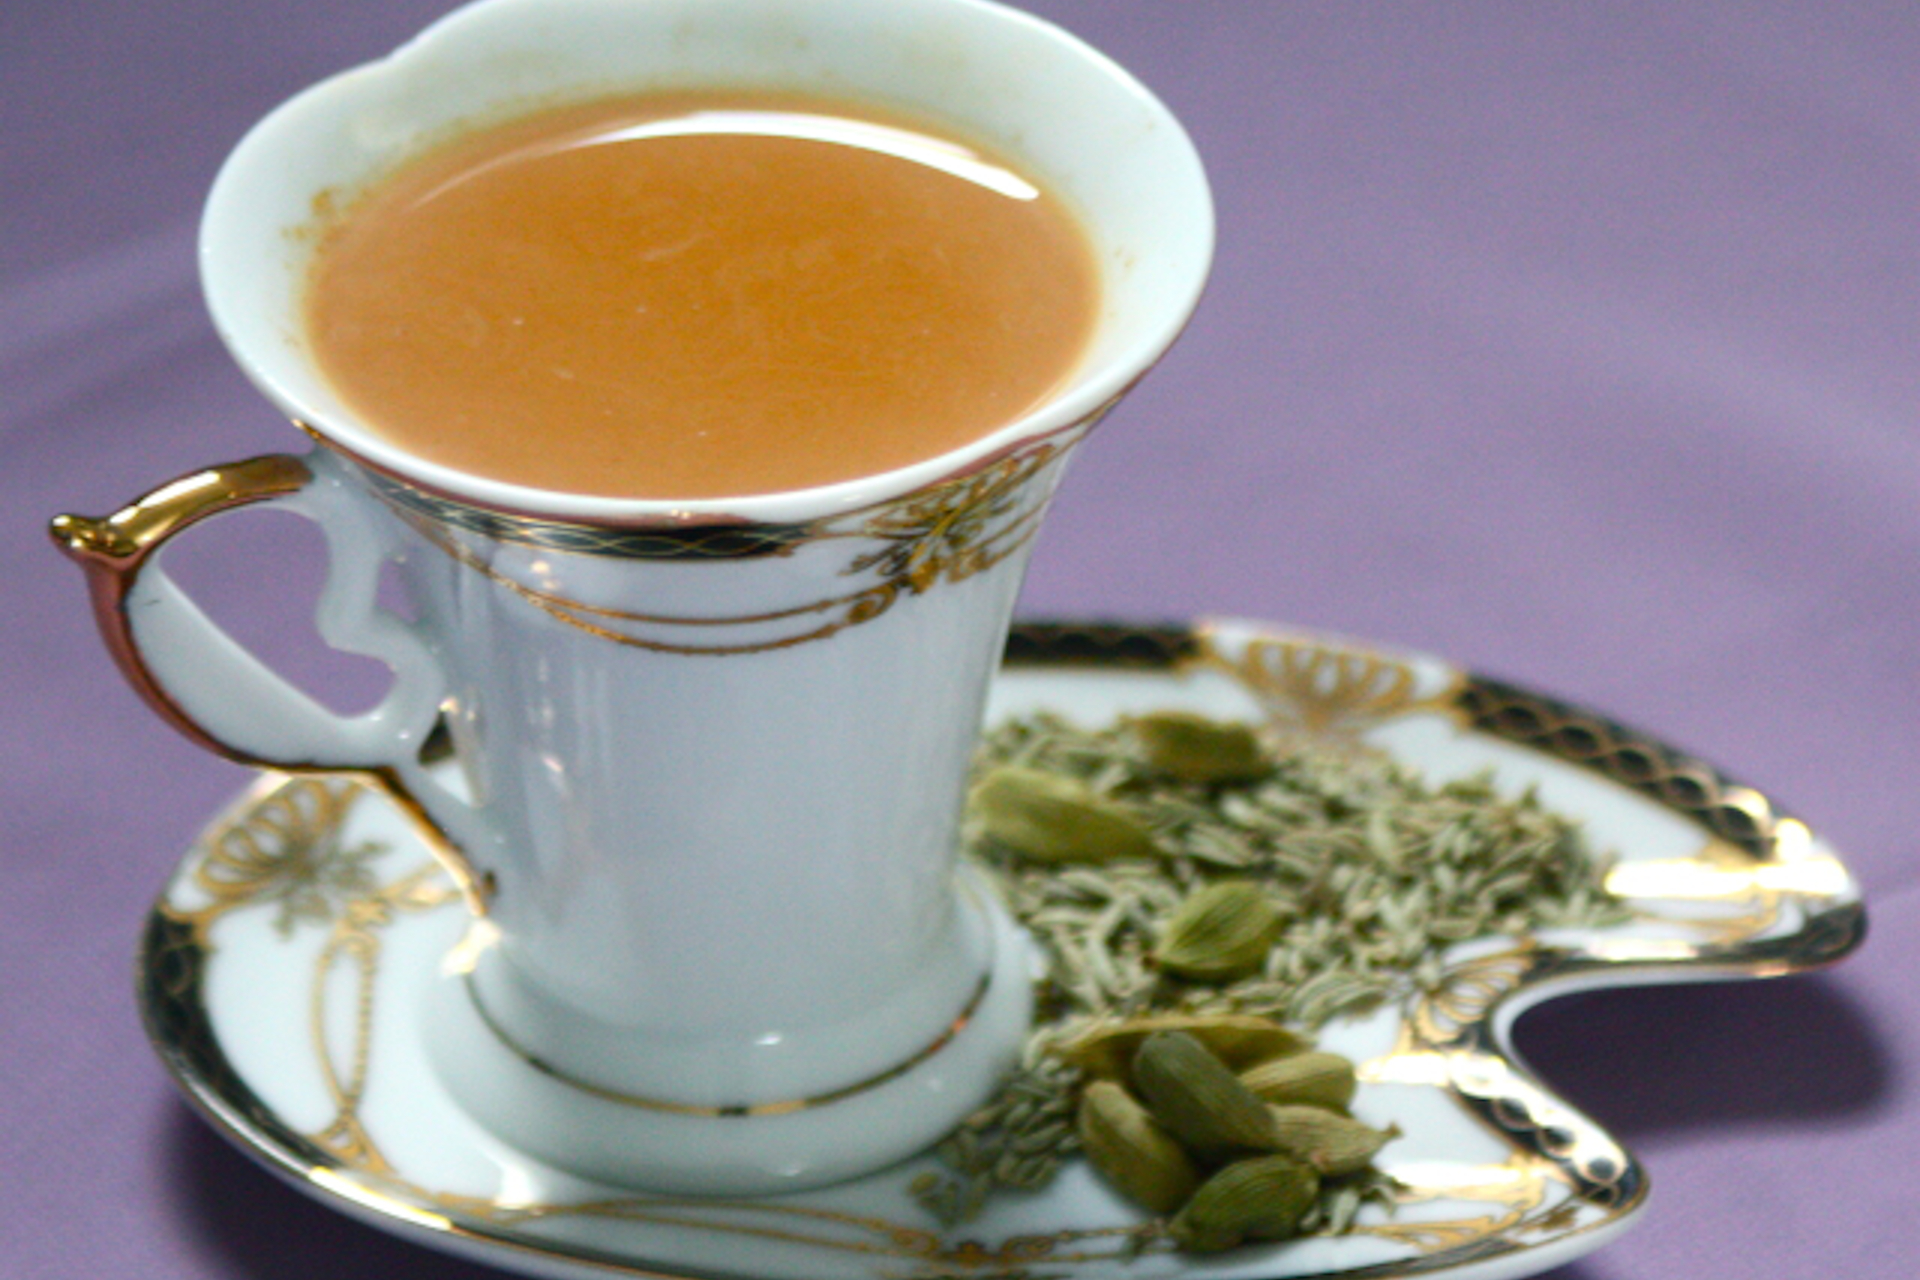 Fennel and cardamom tea